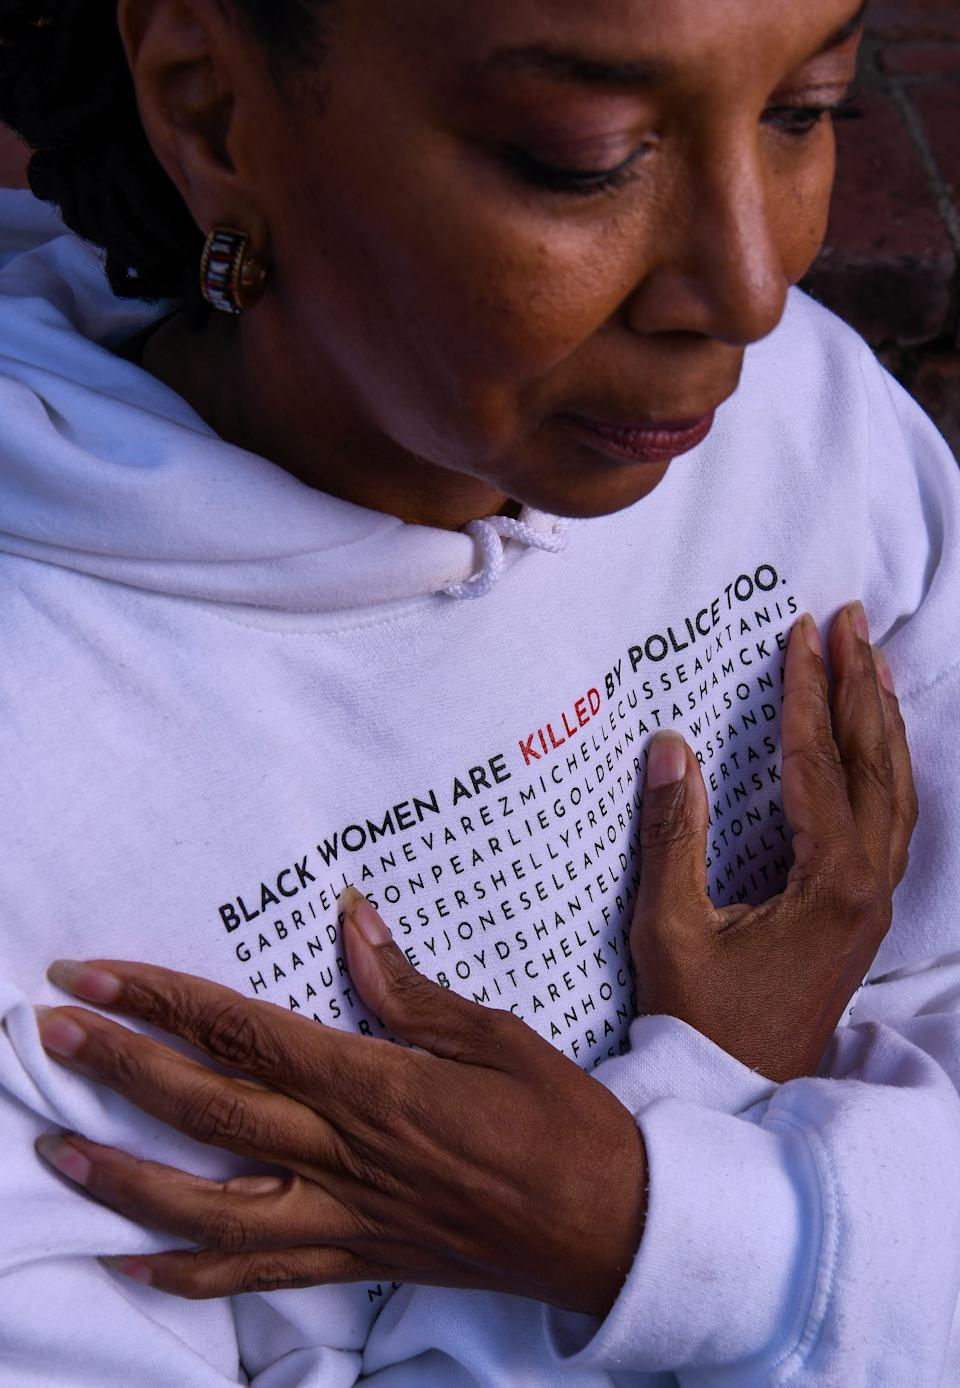 Kimberlé Crenshaw, Co-Founder and Executive Director of the African American Policy Forum wears a hoodie with the names of Black daughters, sisters, wives, cousins, and community members killed by police.